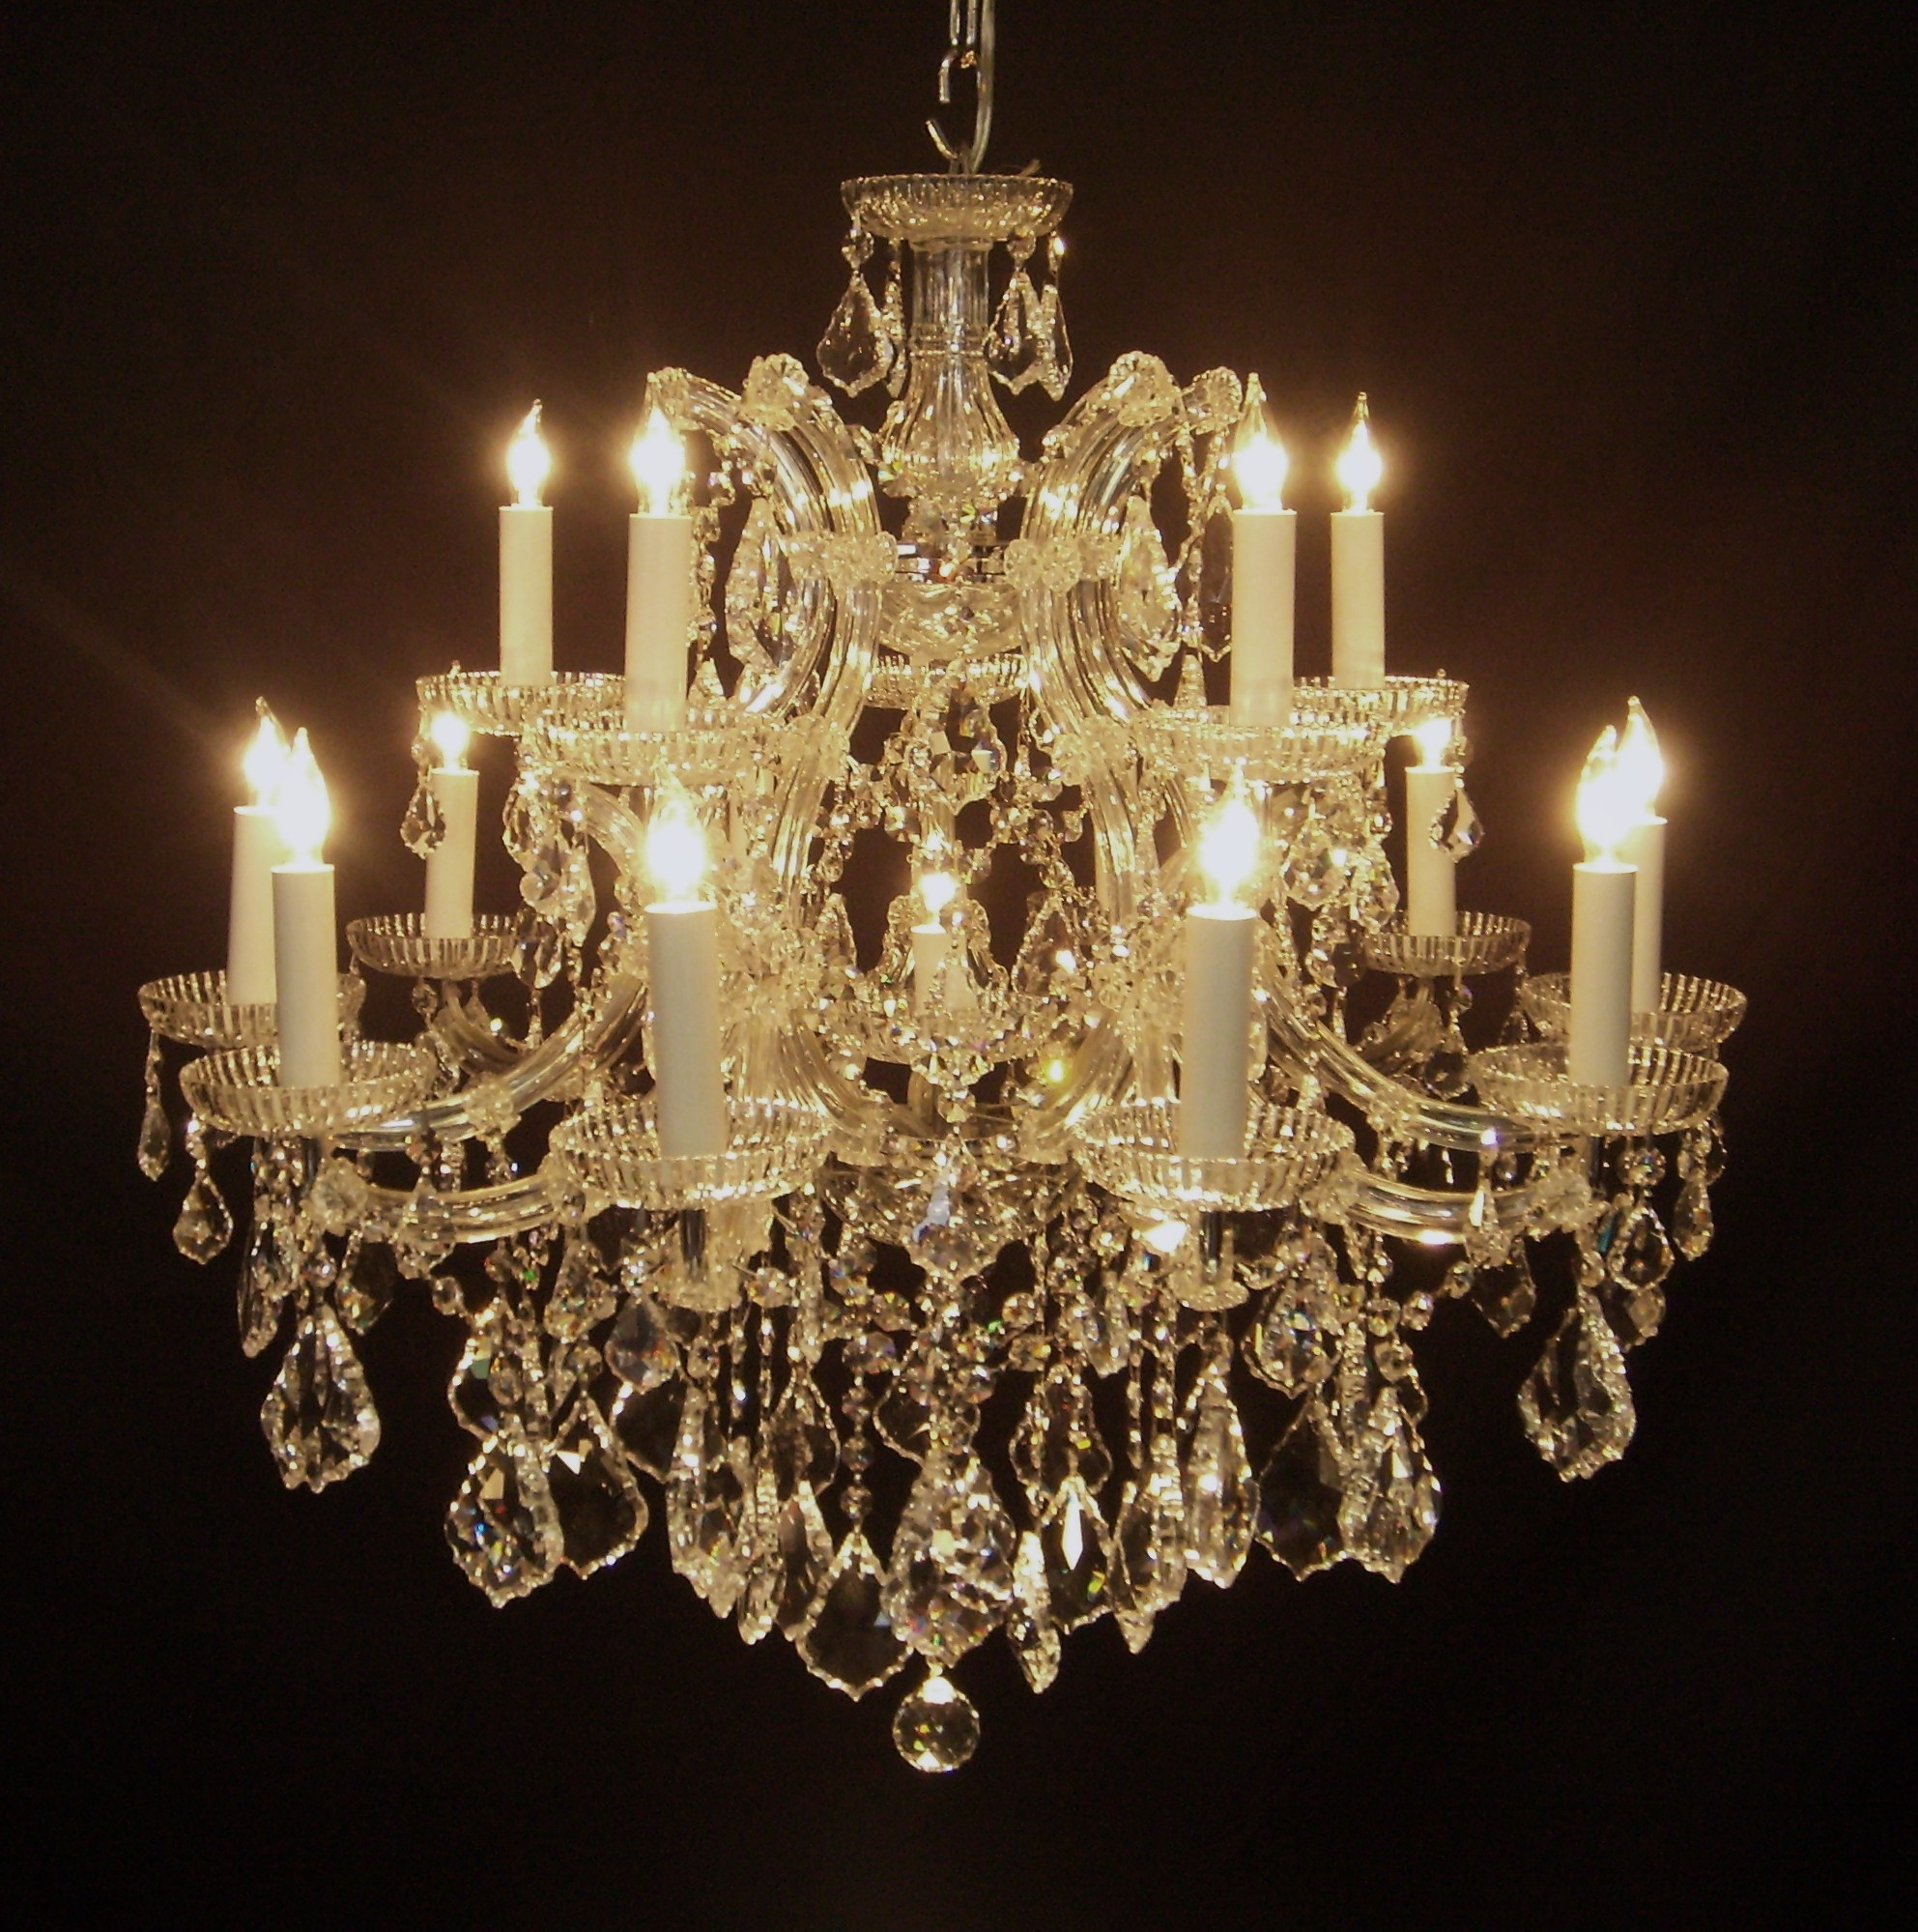 Chandeliers Mortons Antiques Throughout Italian Chandelier Style (Image 6 of 15)